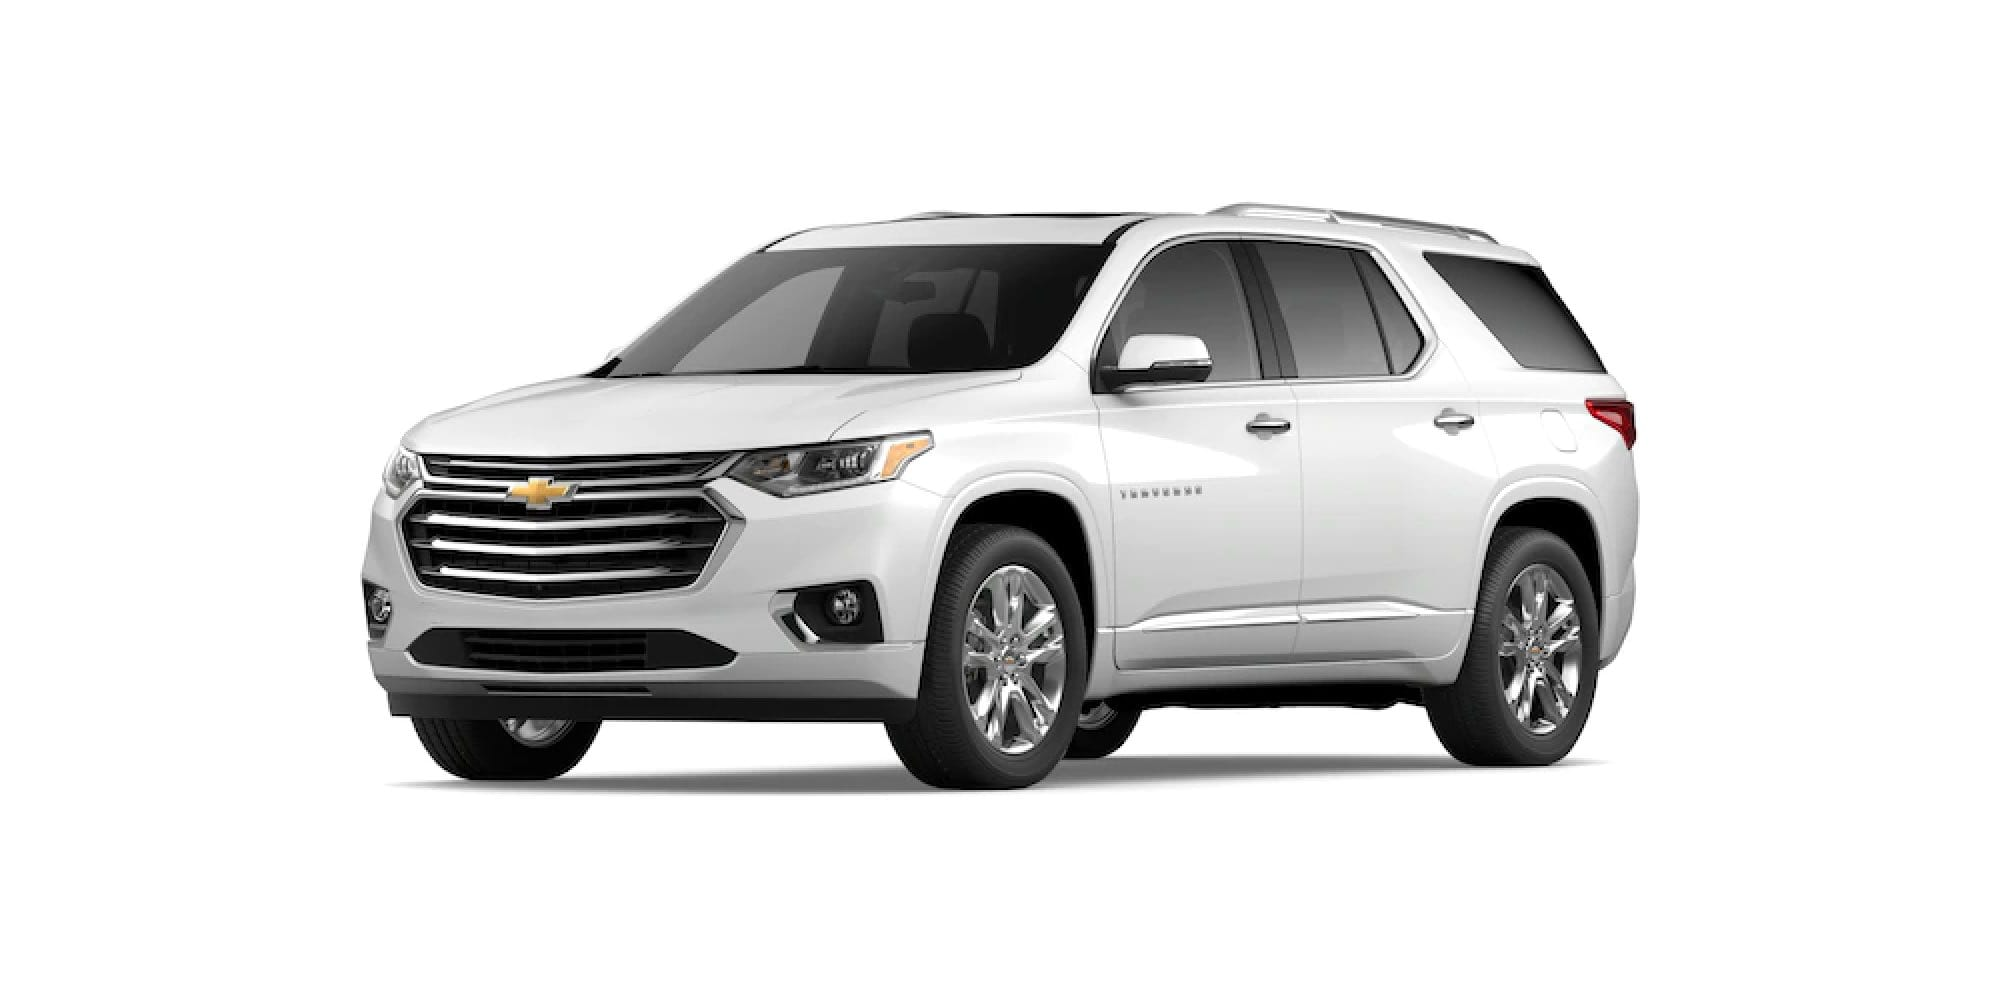 2021 Chevy Traverse in Iridescent Pearl Tricoat